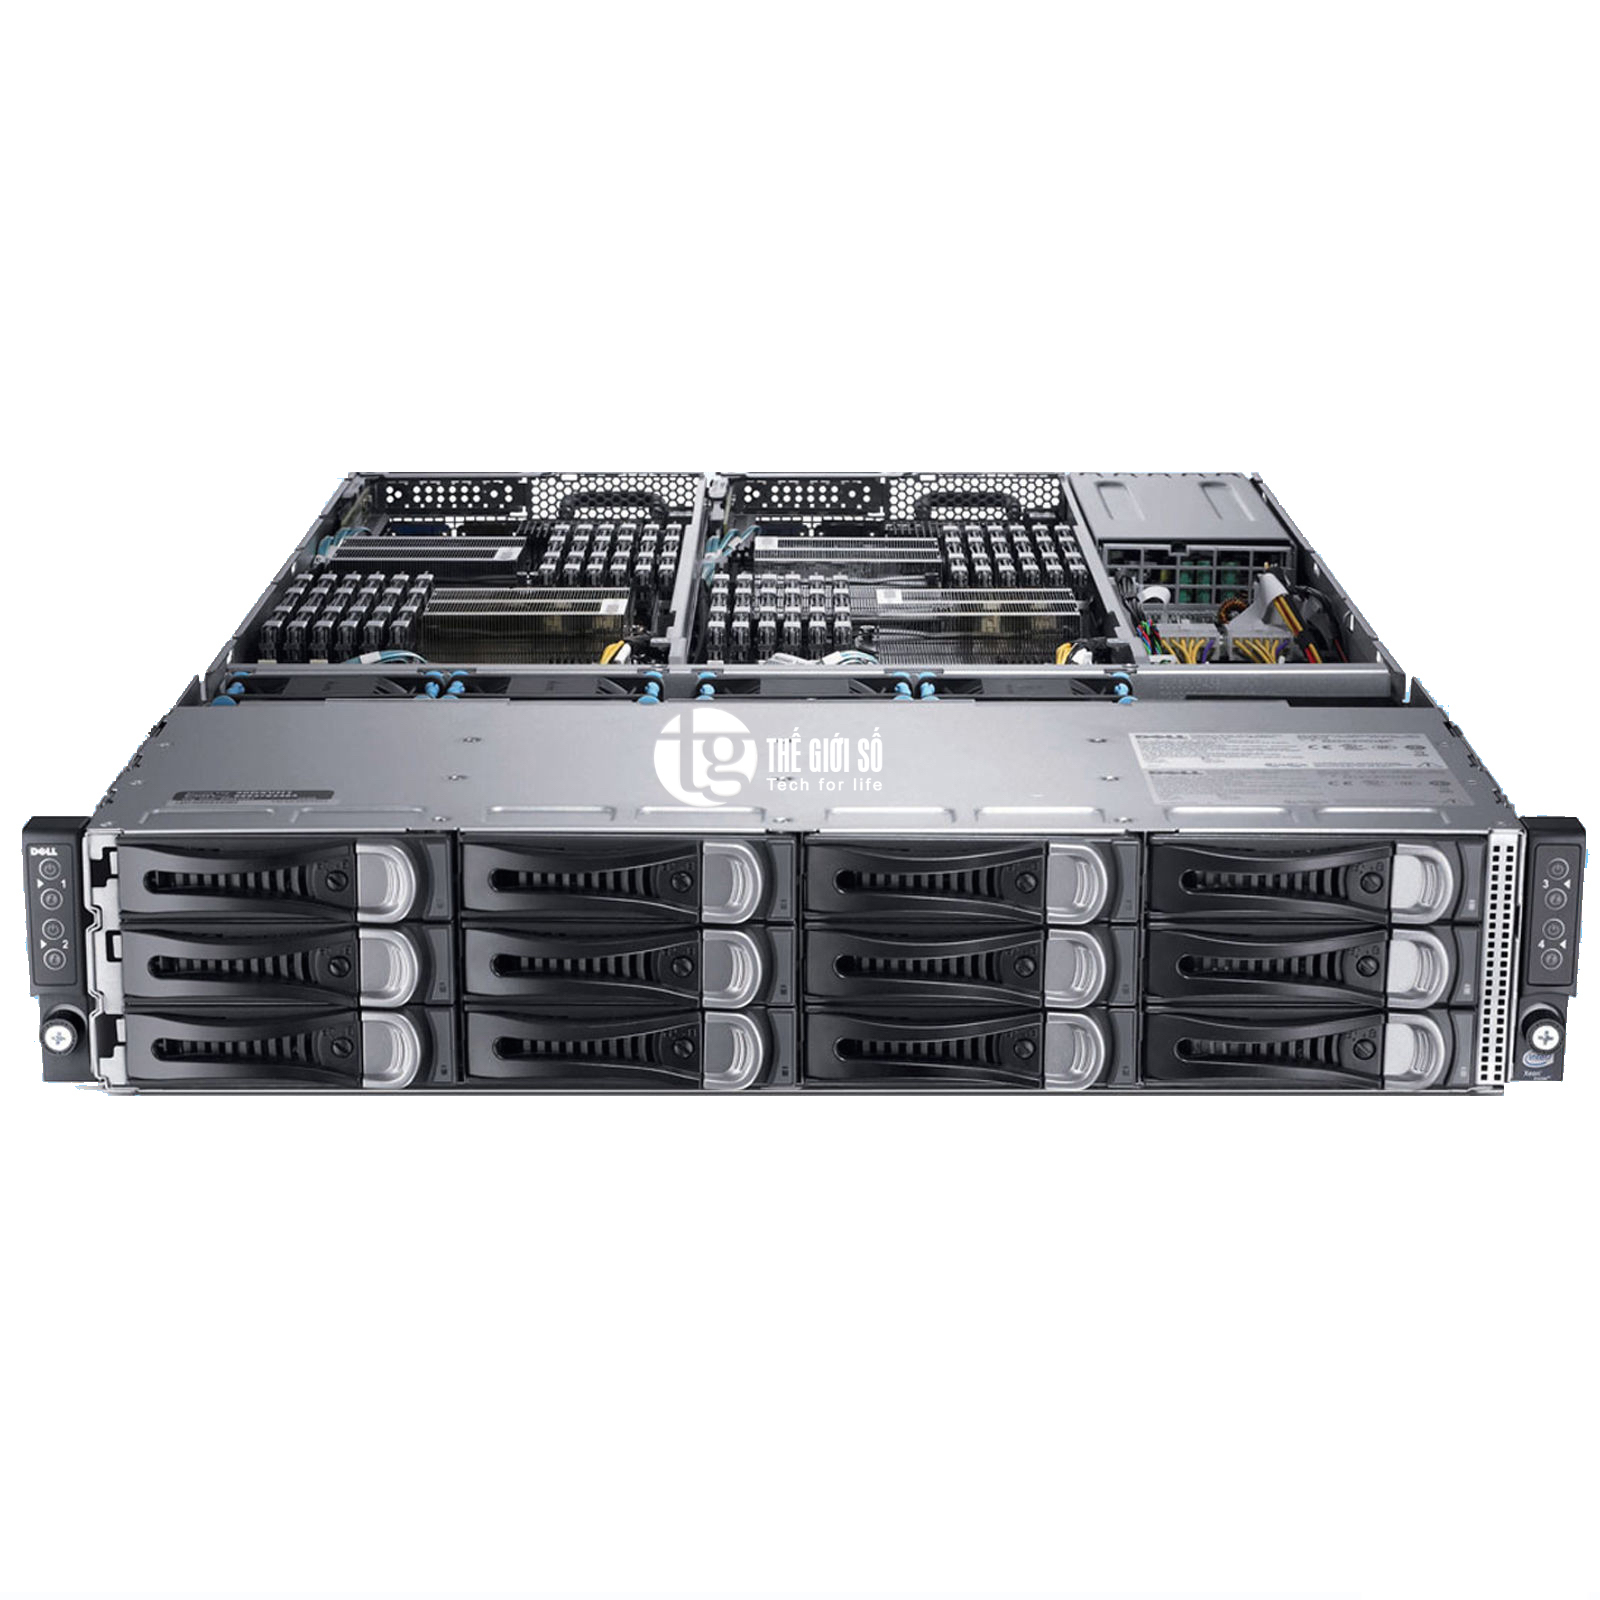 SERVER DELL POWEREDGE C6220 E5-2670 RAID 9265-8i